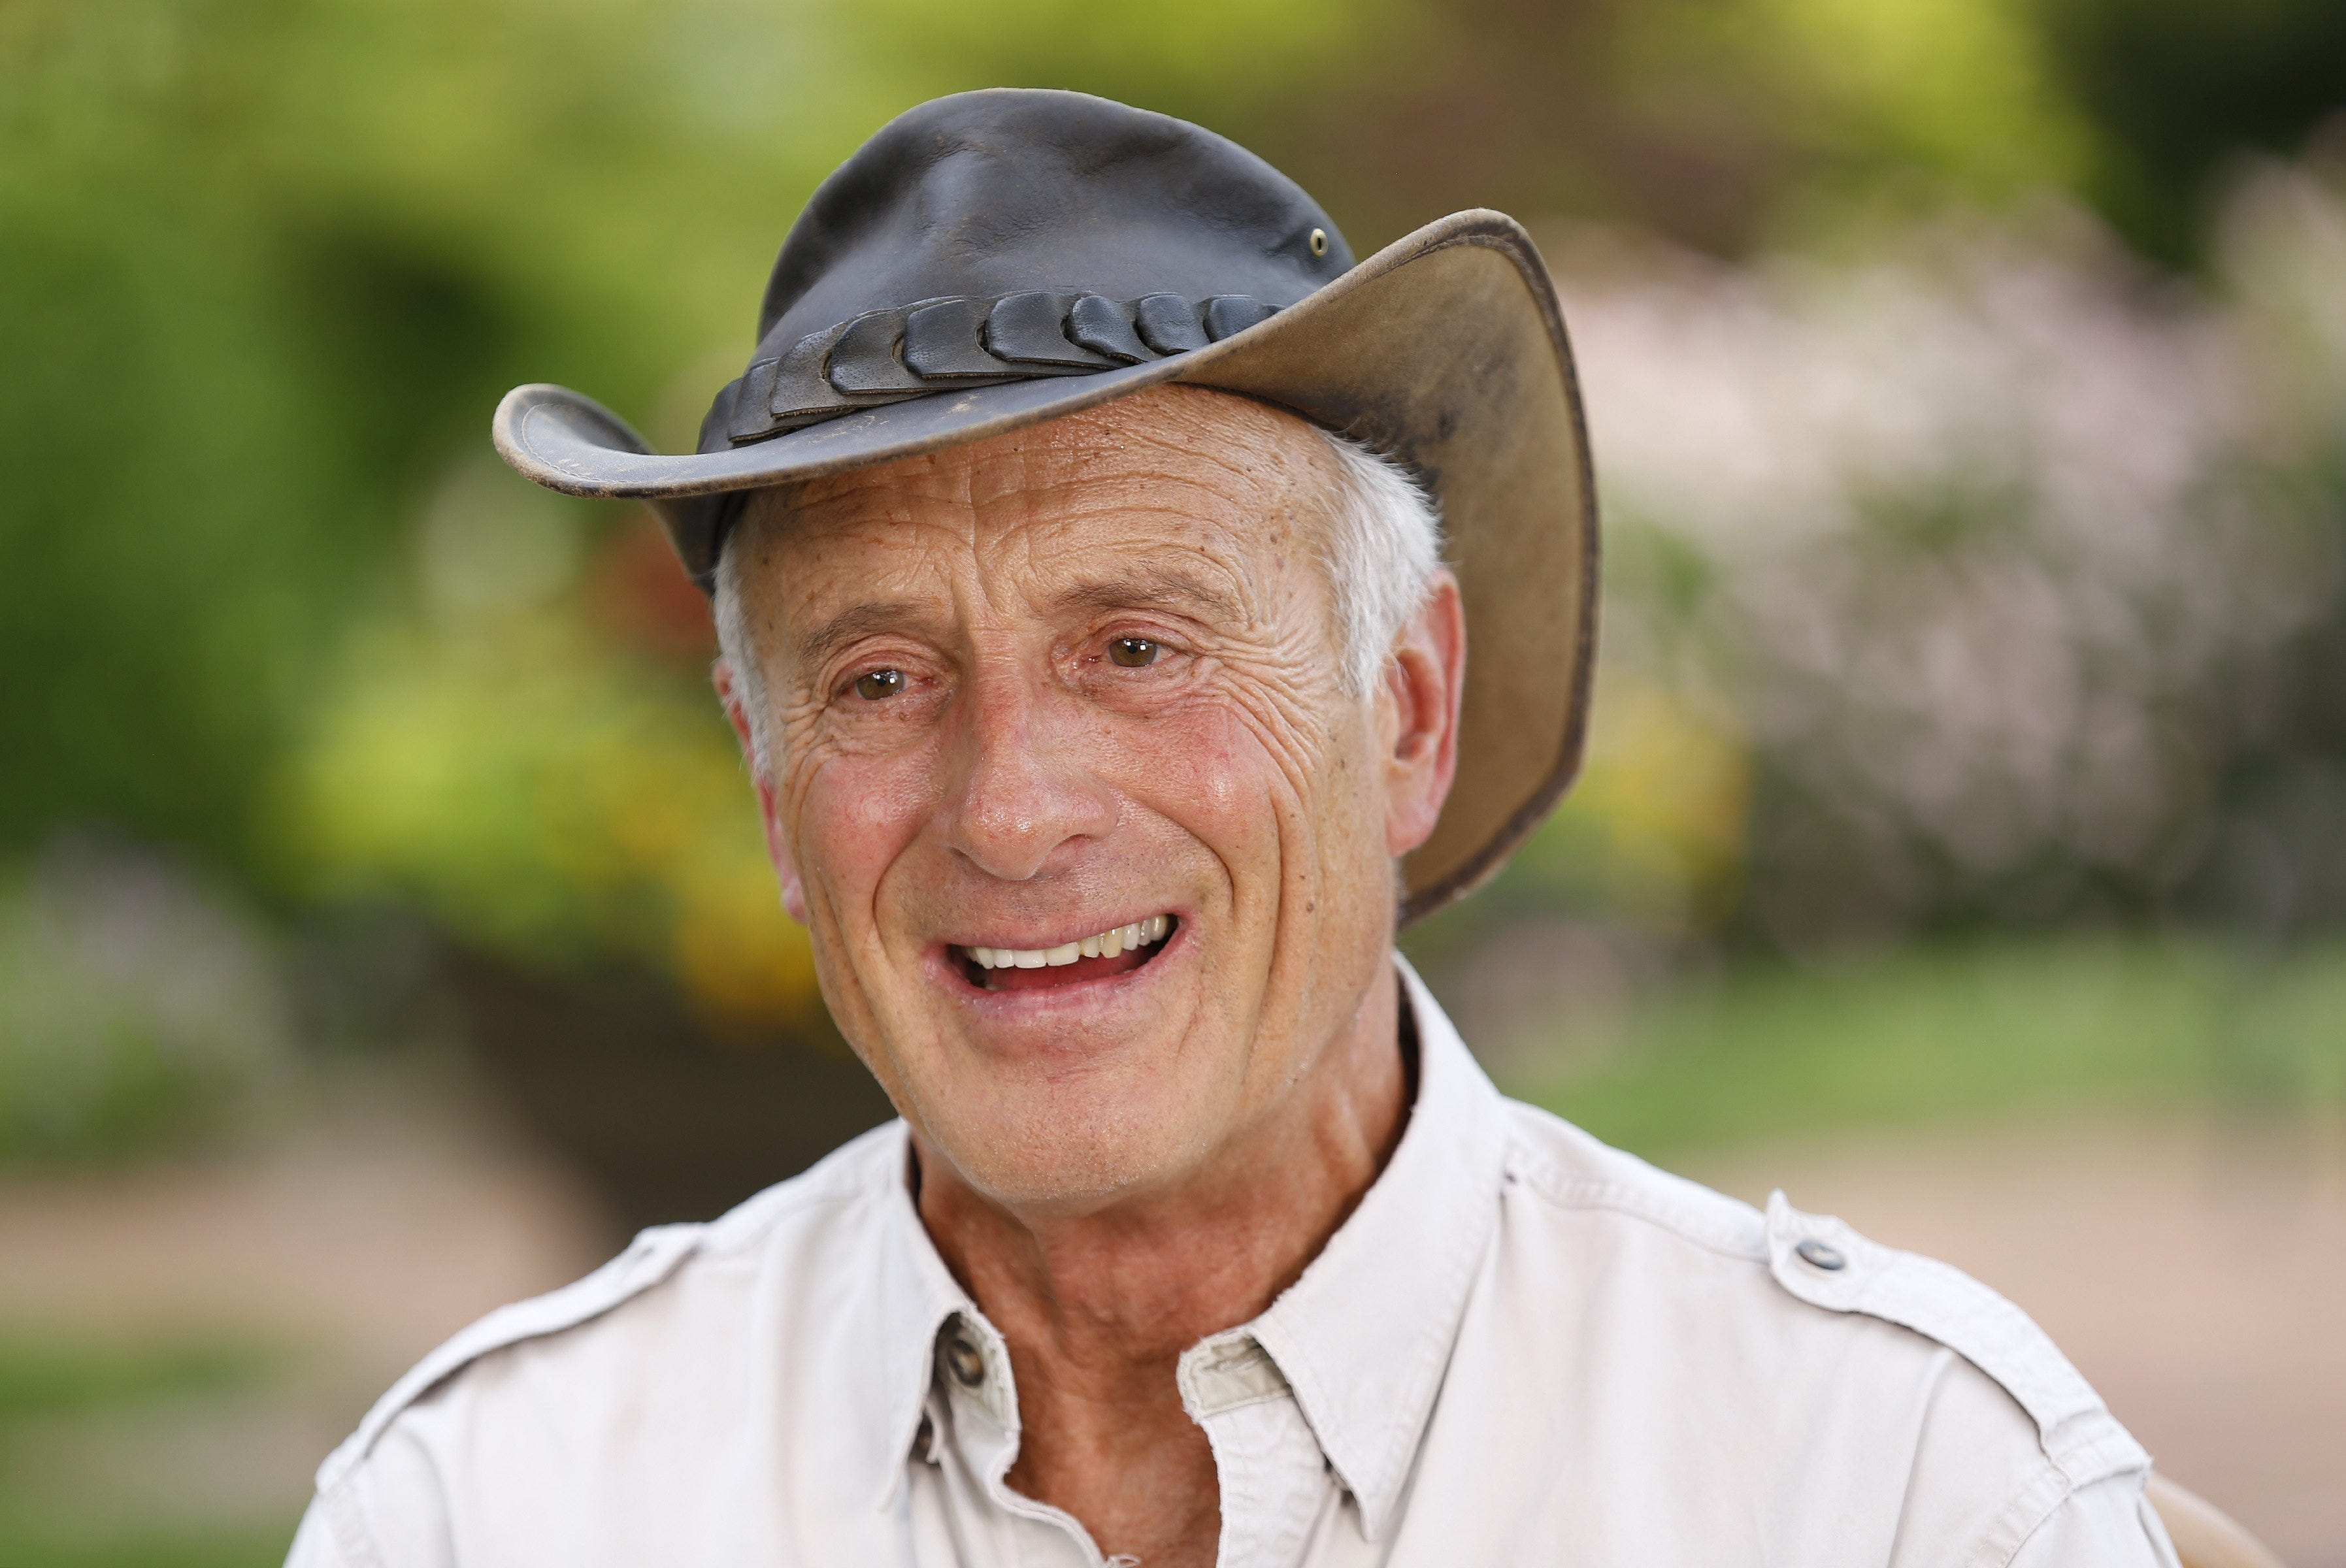 Zookeeper Jack Hanna of  Into the Wild,   Animal Adventures  has dementia, daughters say